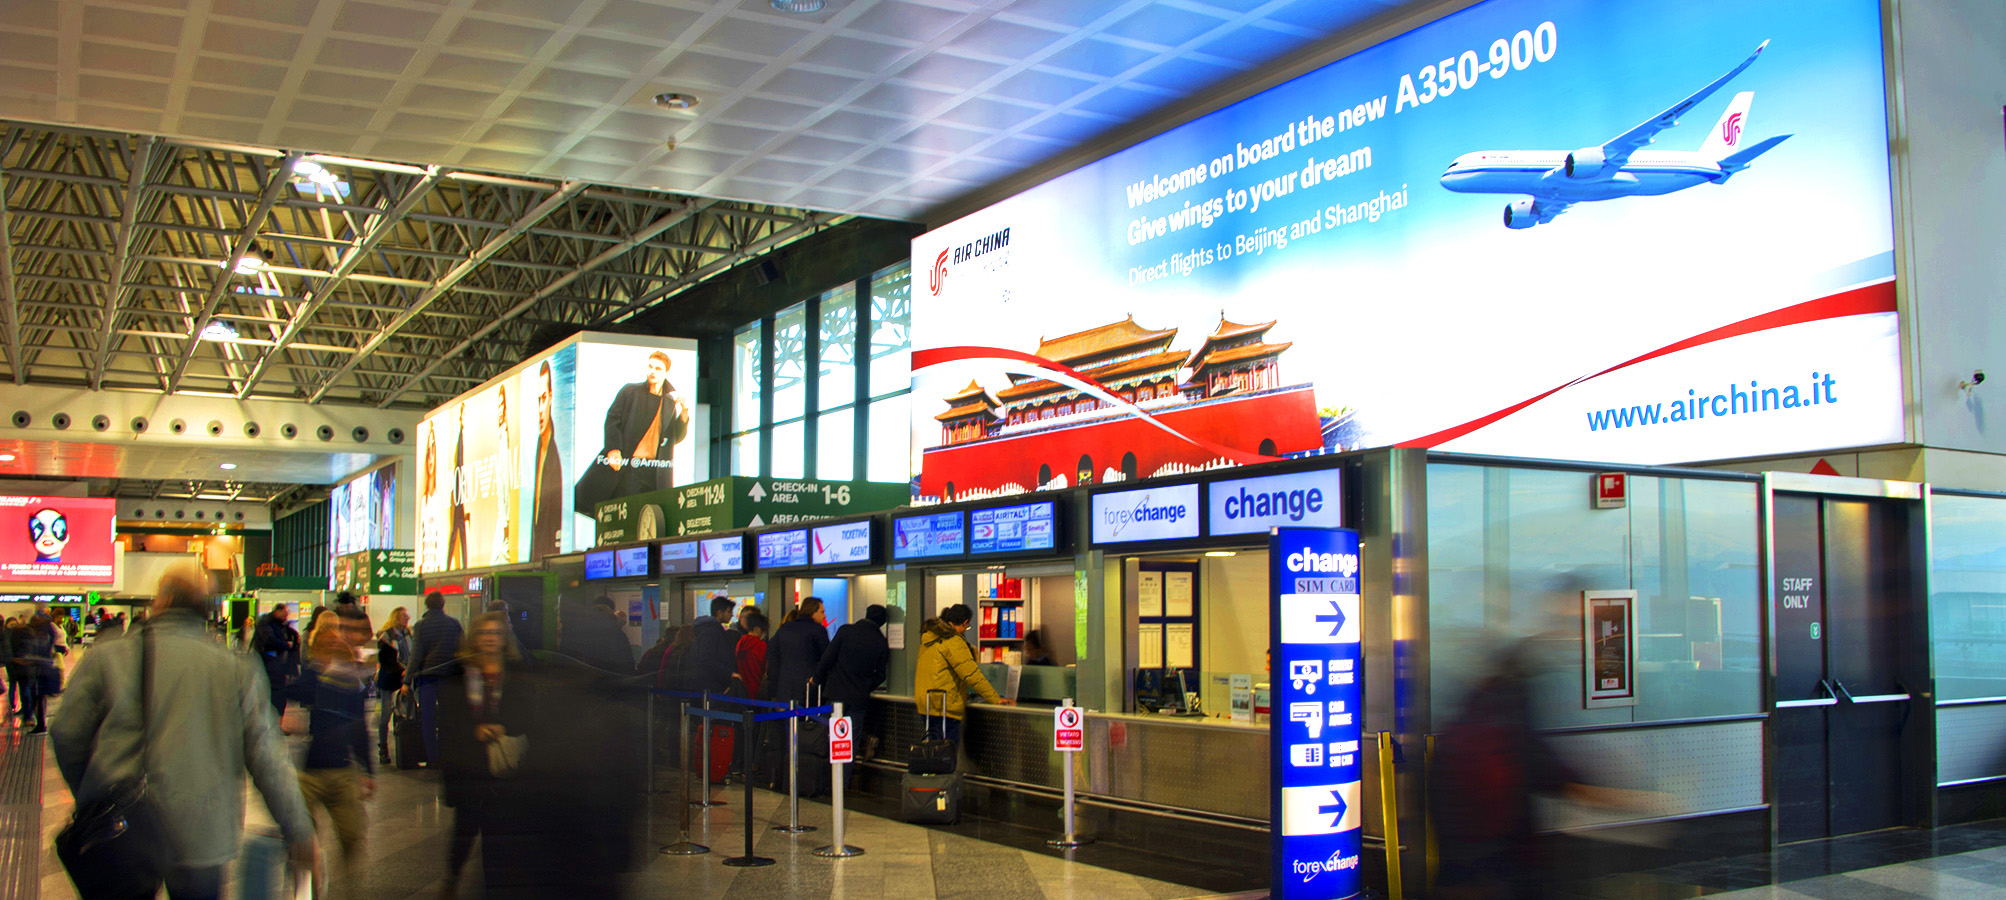 Air China viaggia a Milano con IGPDecaux